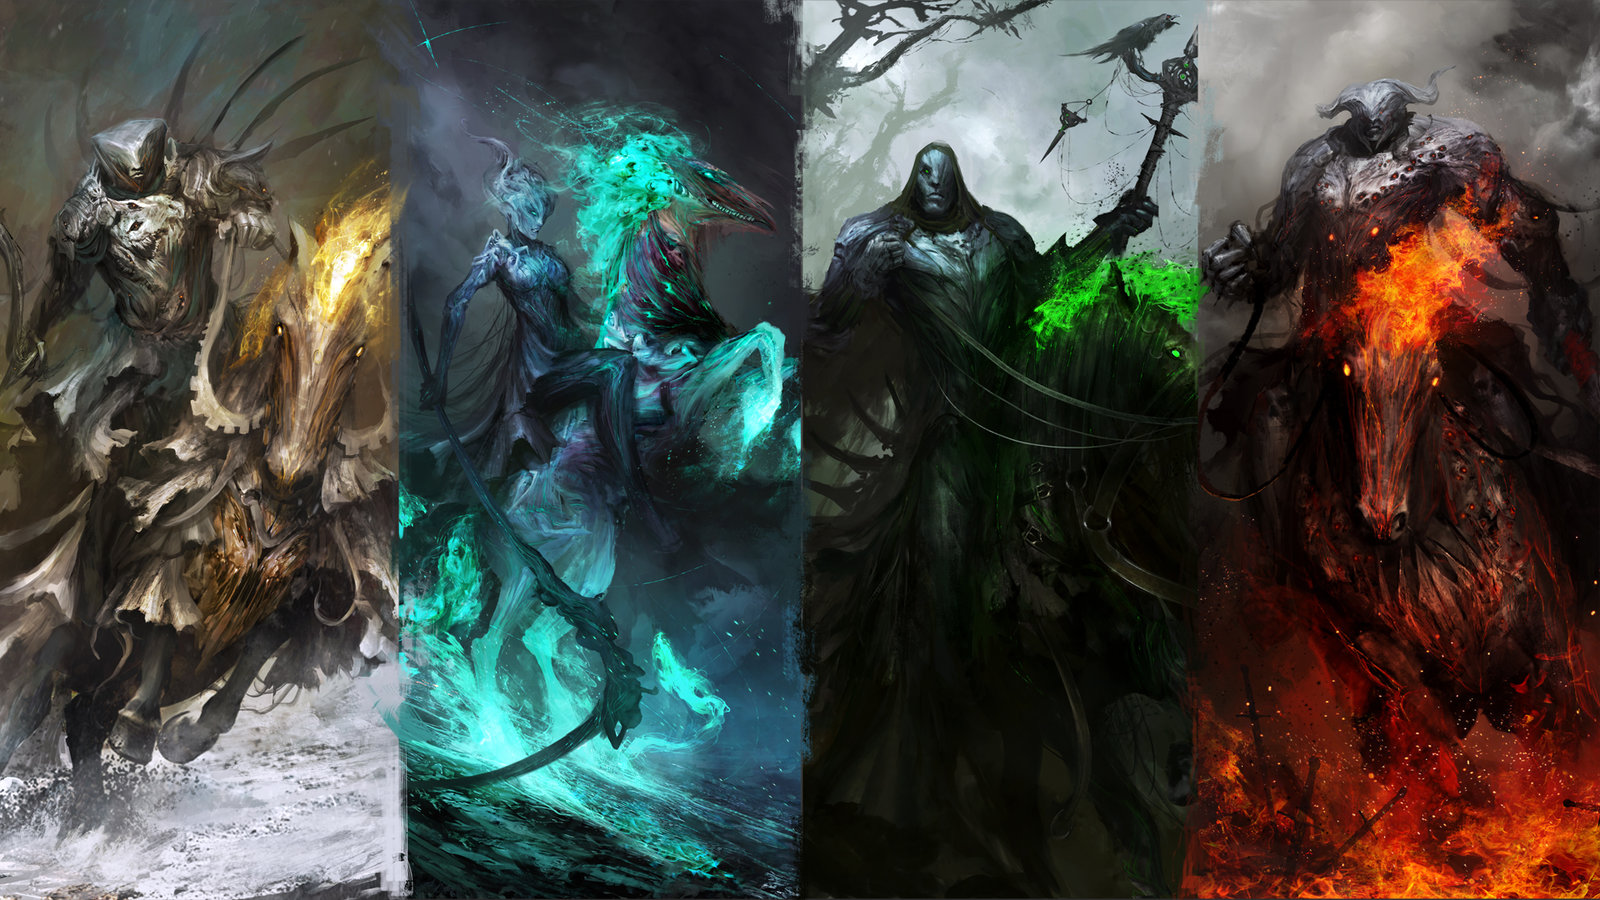 Four Horsemen Of The Apocalypse Wallpaper The four wallpapers of 1600x900